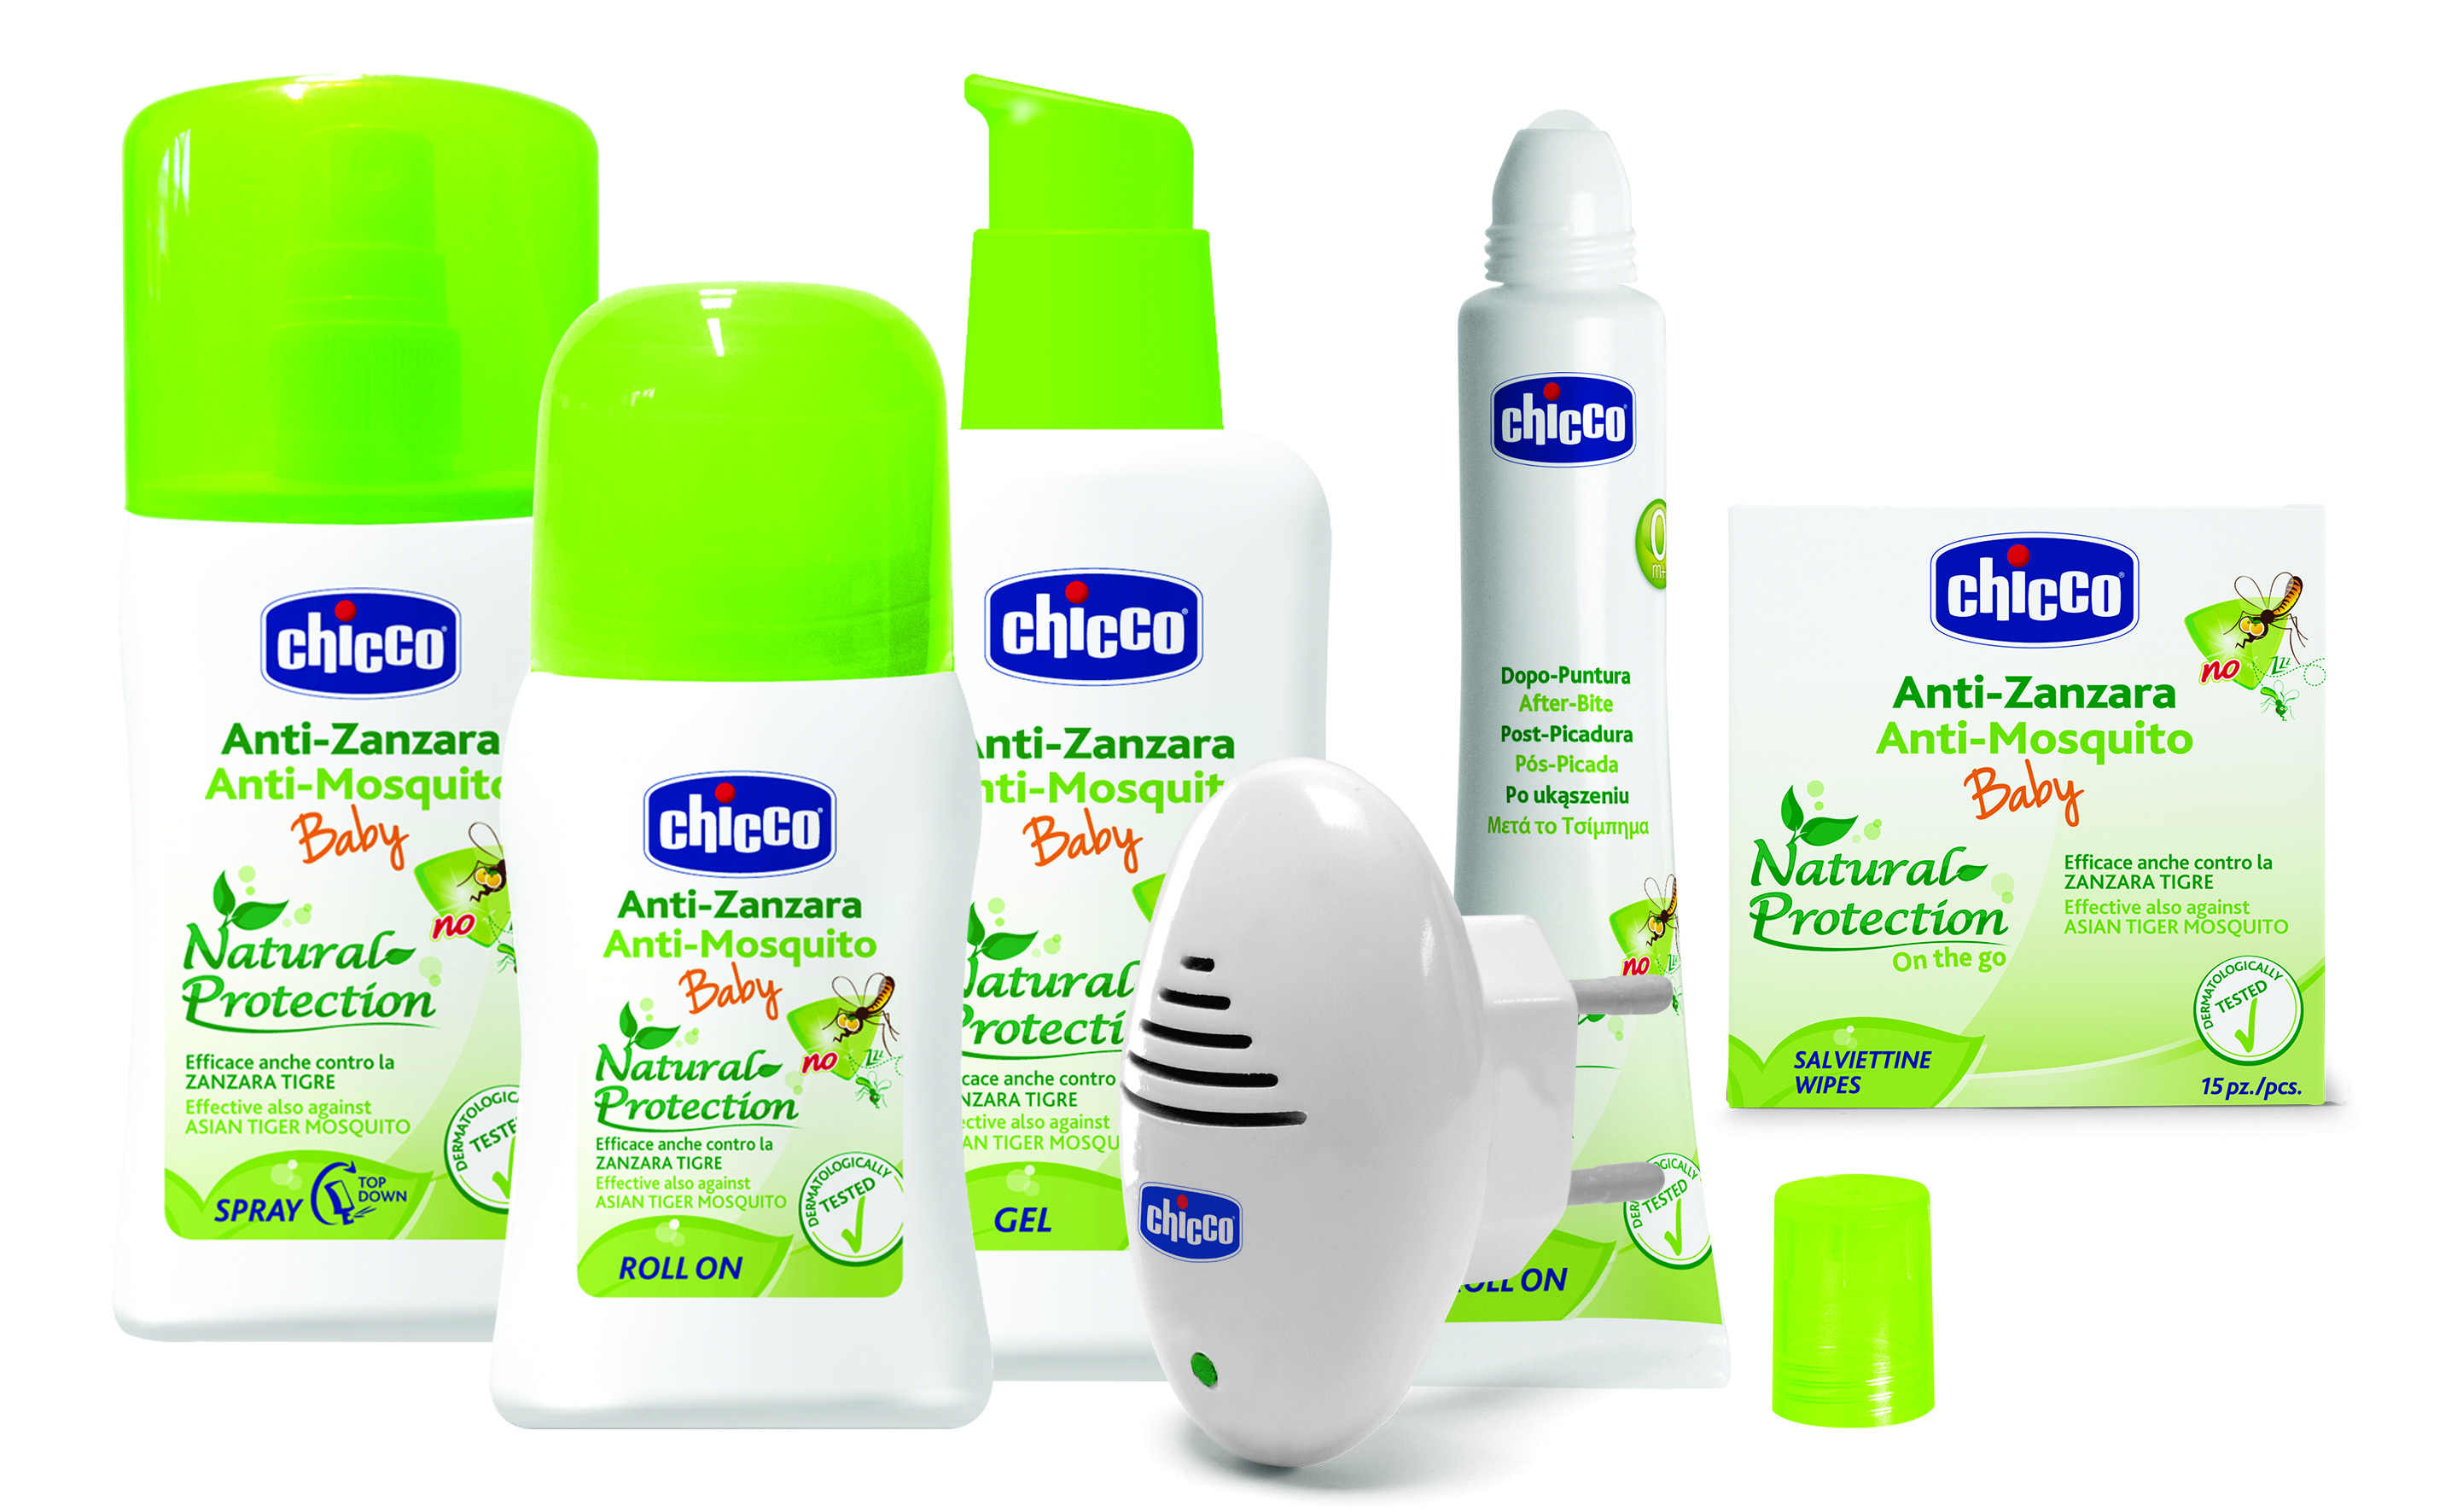 Chicco Zanza Anti-Mosquito Range - By Megan Kelly